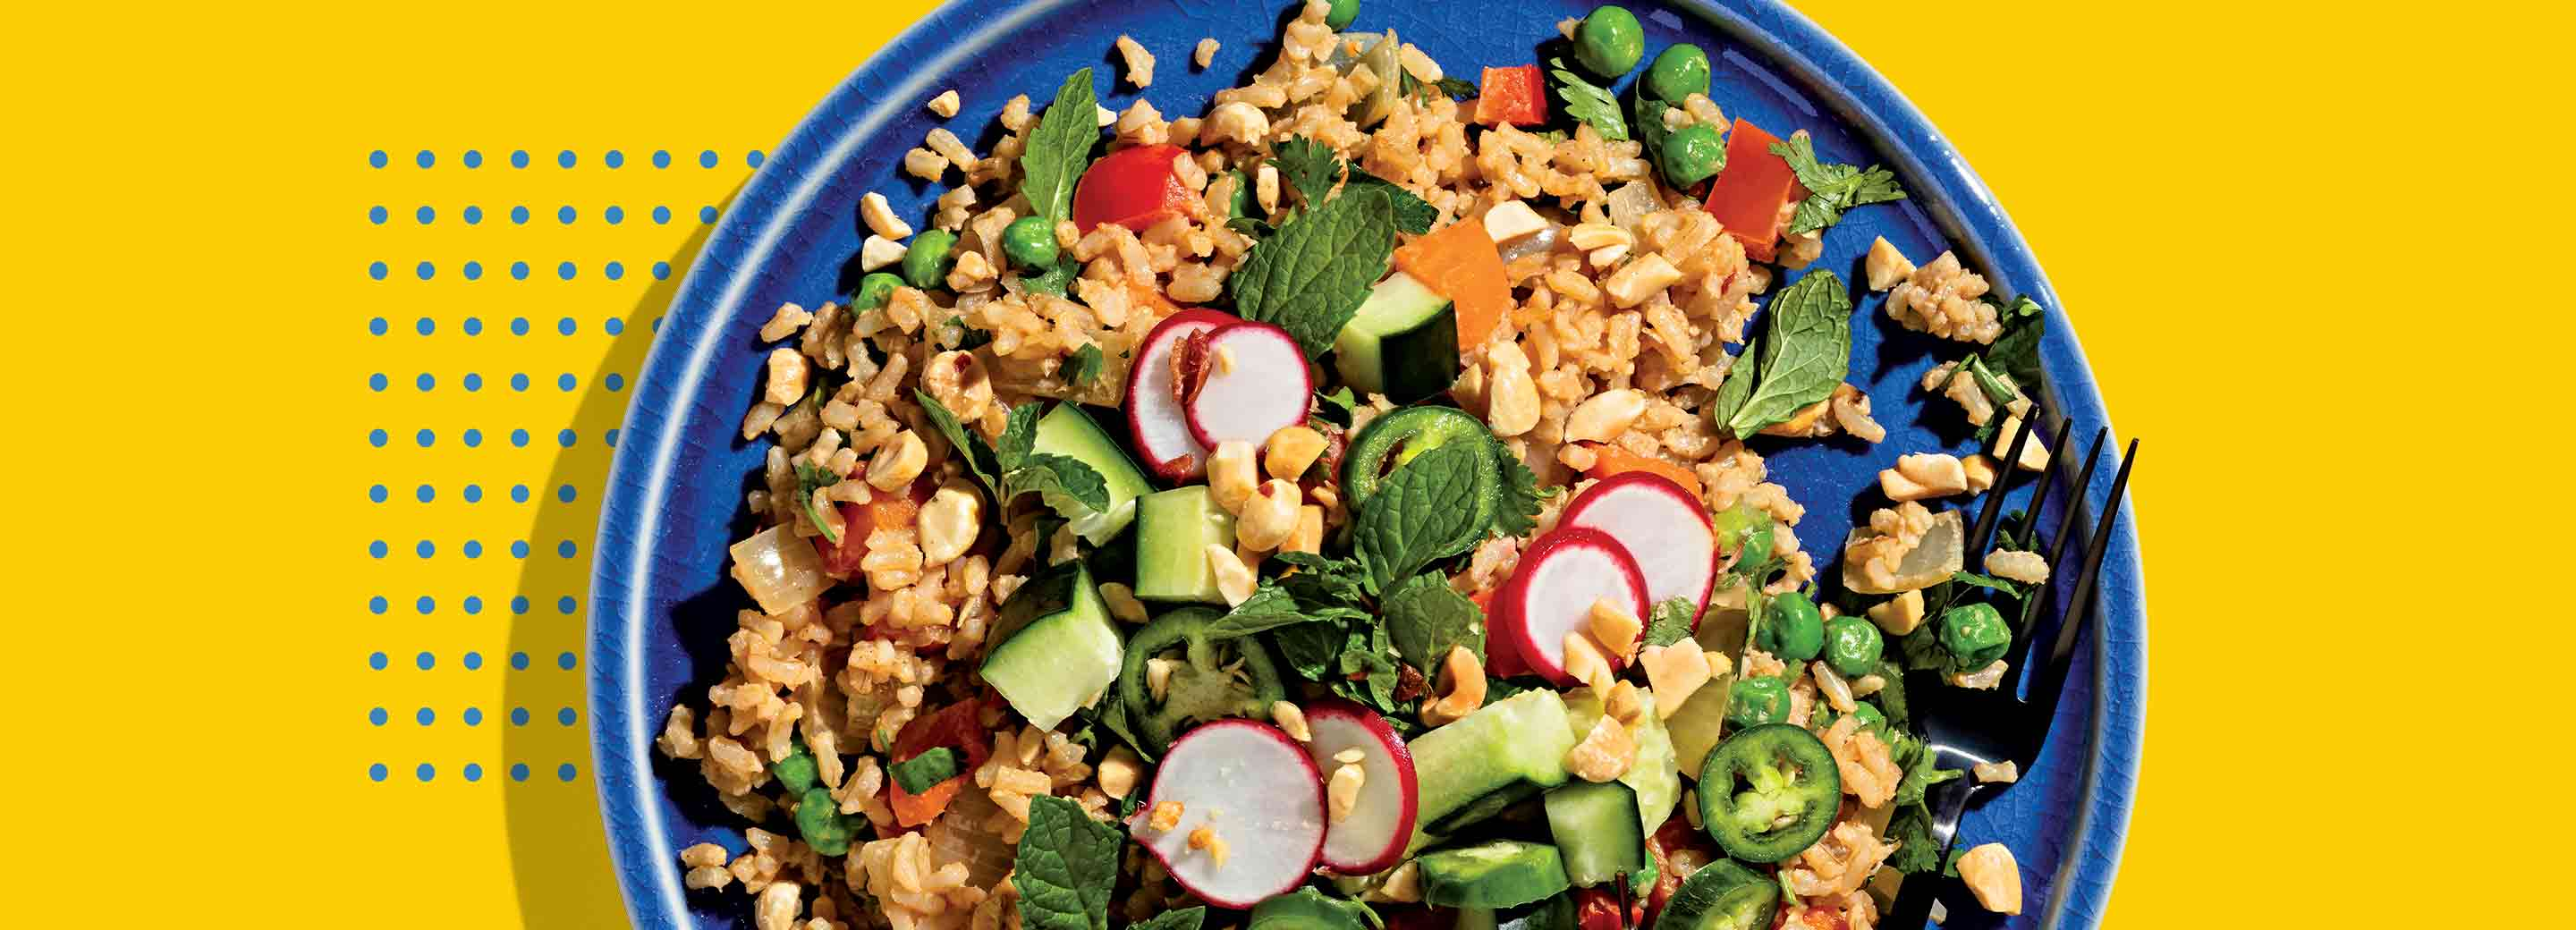 Peanut Fried Rice with Quick-Pickled Veggies